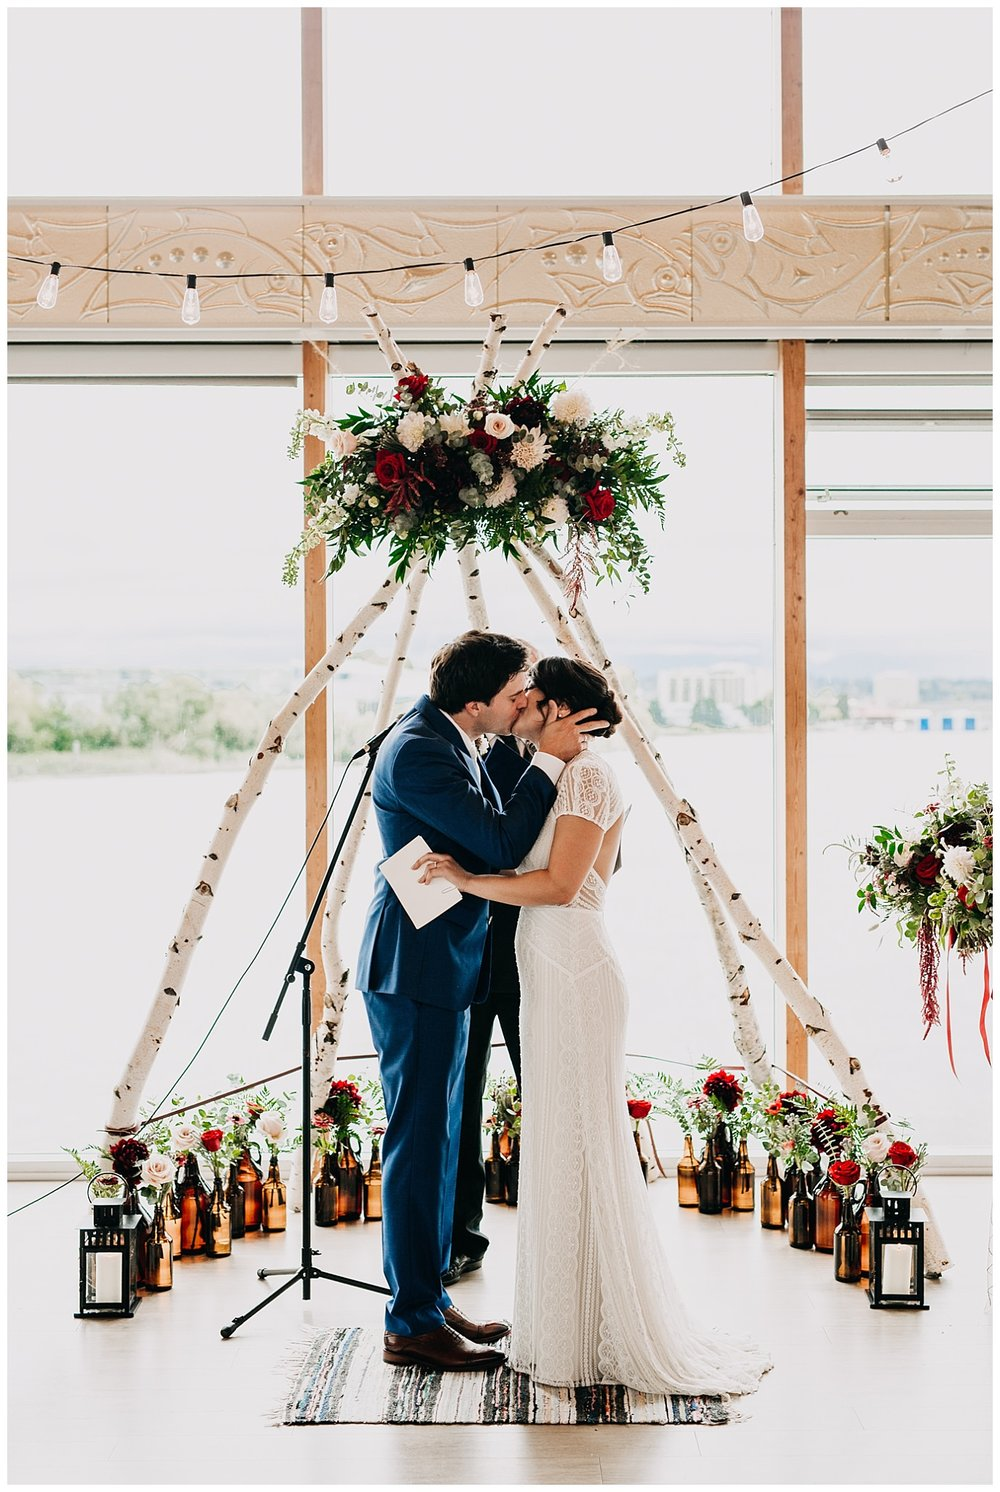 bride and groom first kiss at ubc boathouse wedding ceremony